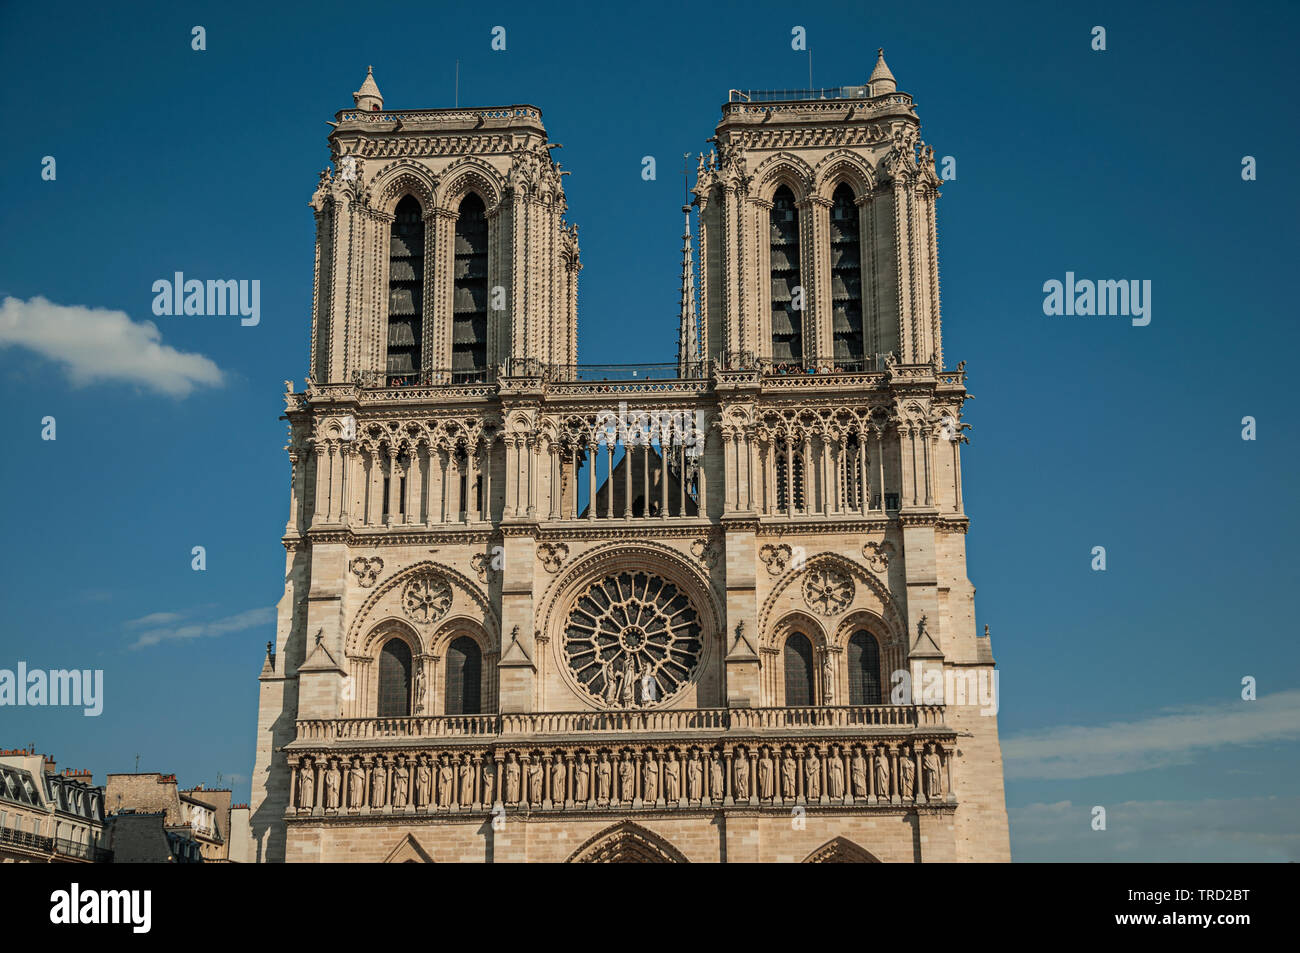 Towers And Ornament On Facade Of Gothic Notre Dame Cathedral